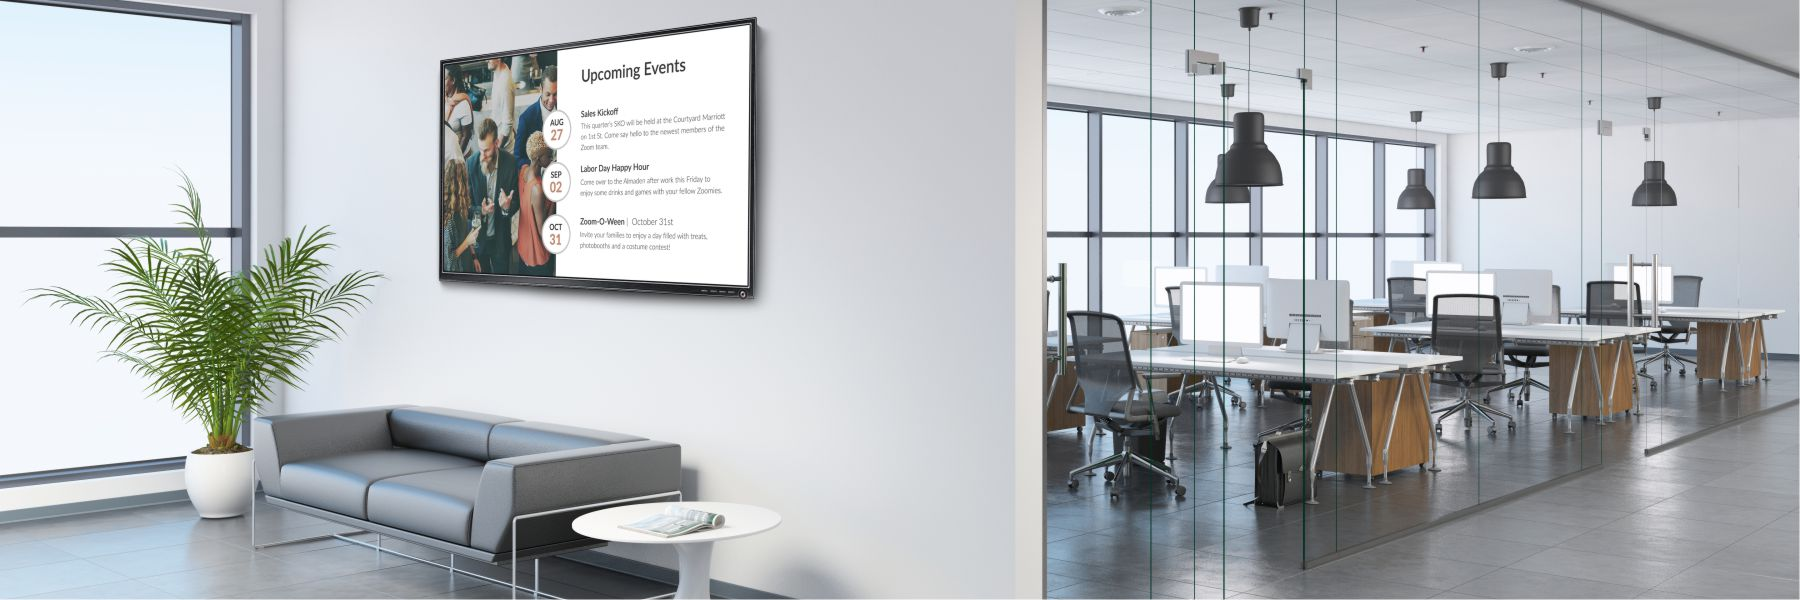 zoom-video-conferencing-rooms-signage-130420